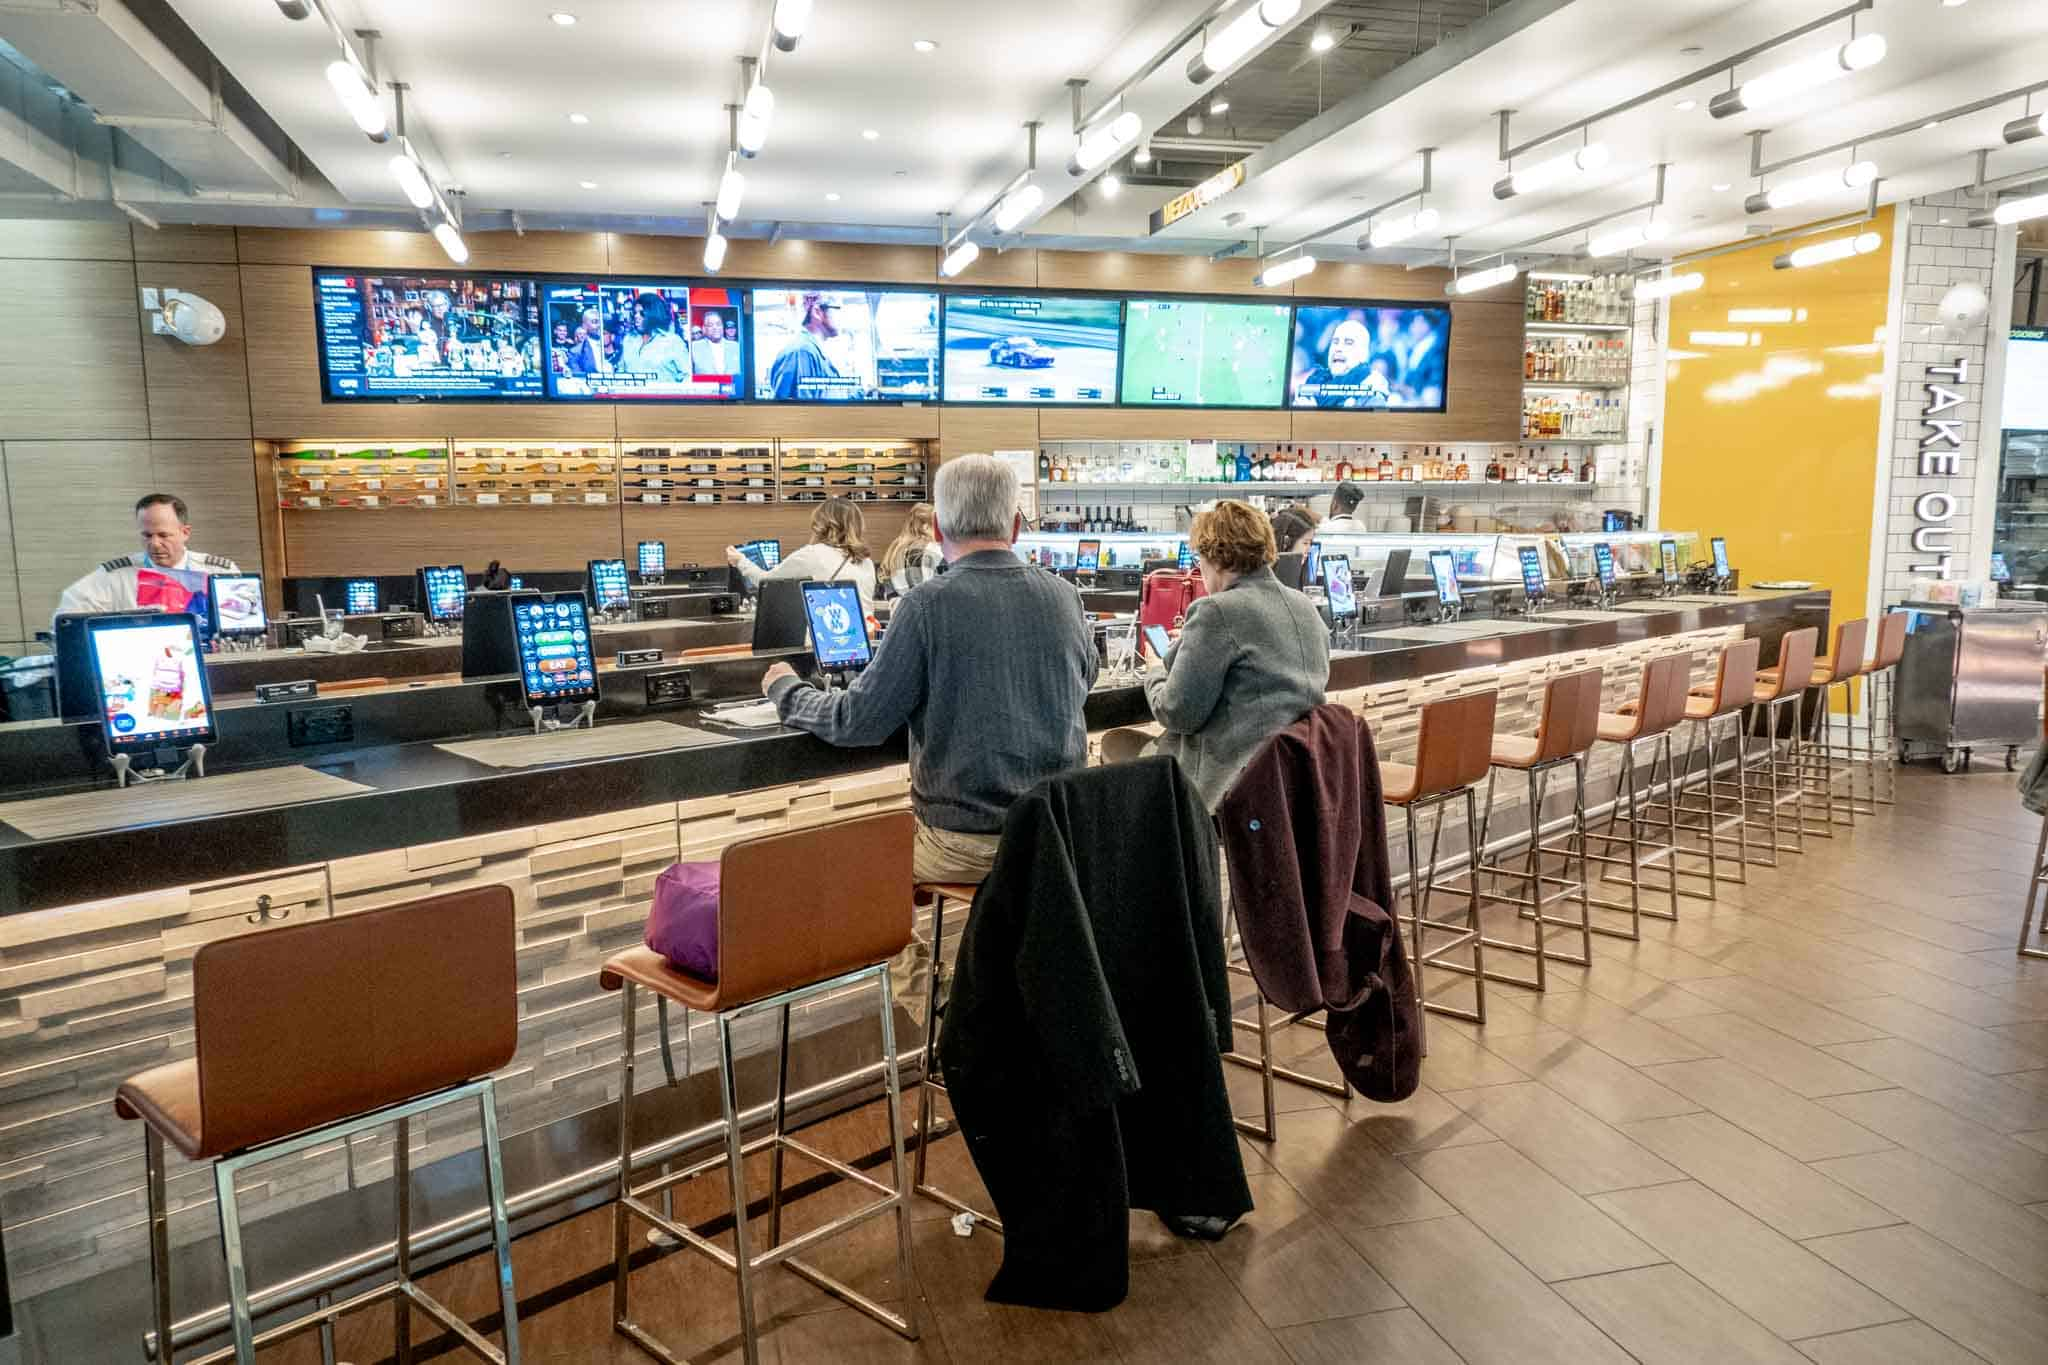 People sitting at a bar at Philadelphia airport with lots of TV screens